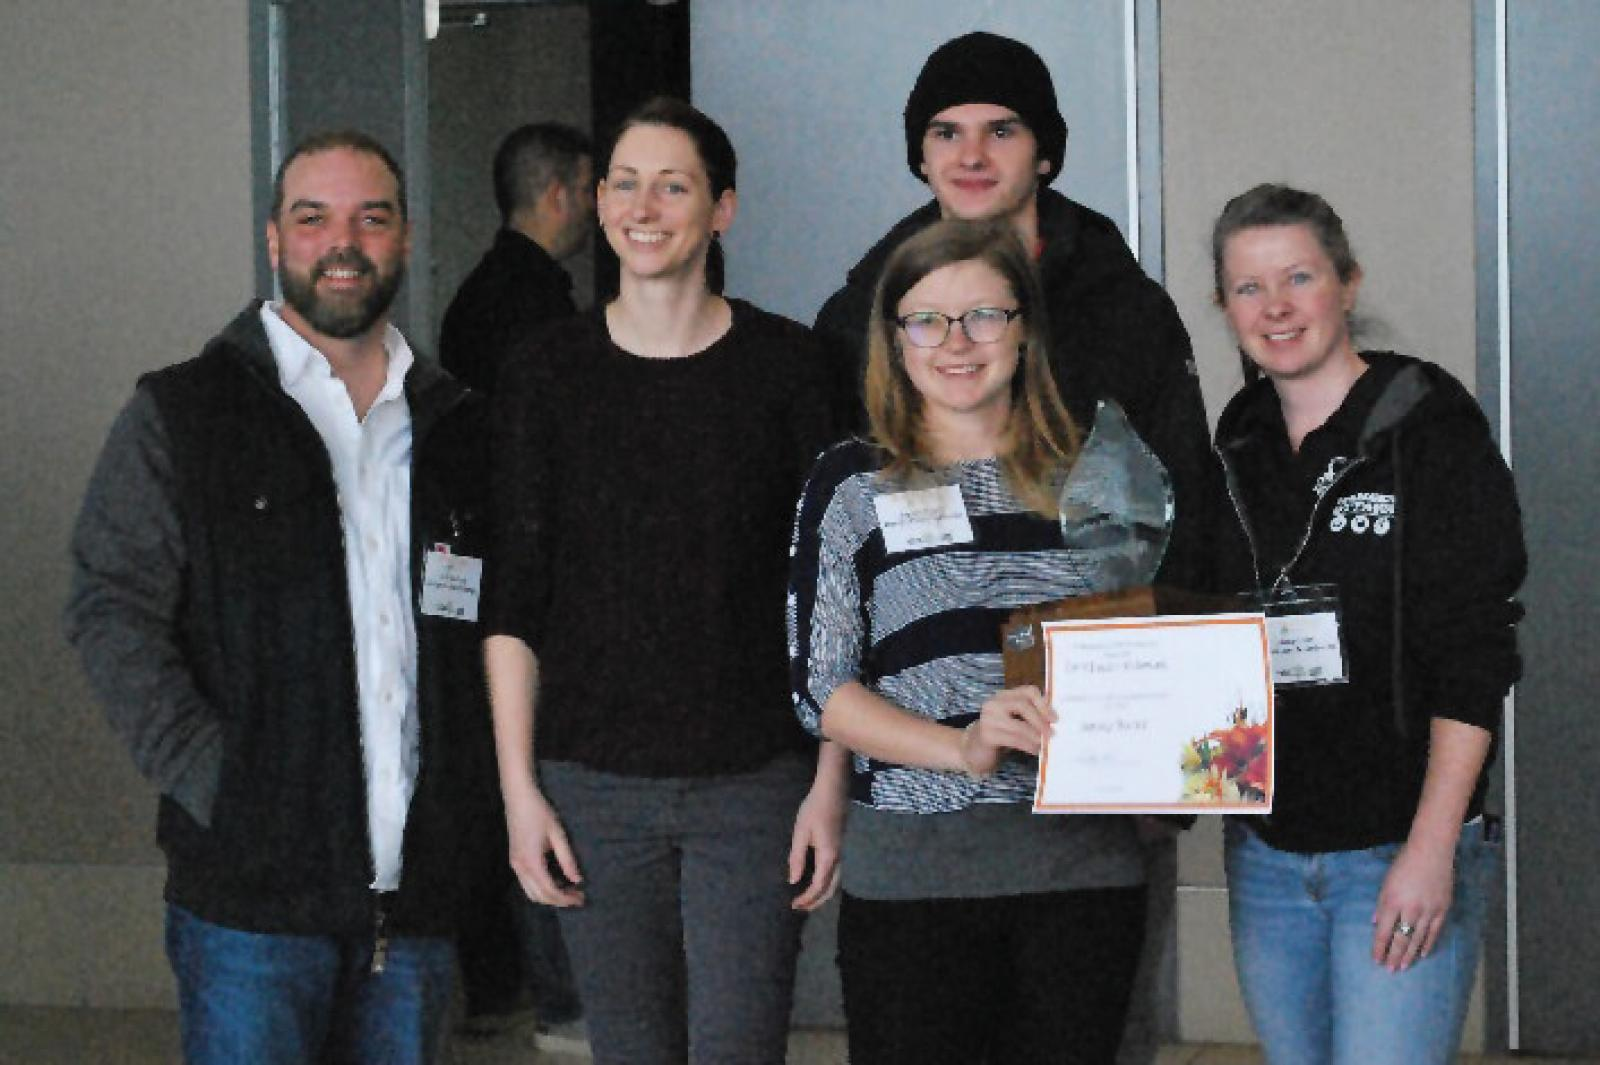 Ottawa Chapter announces design challenge winner